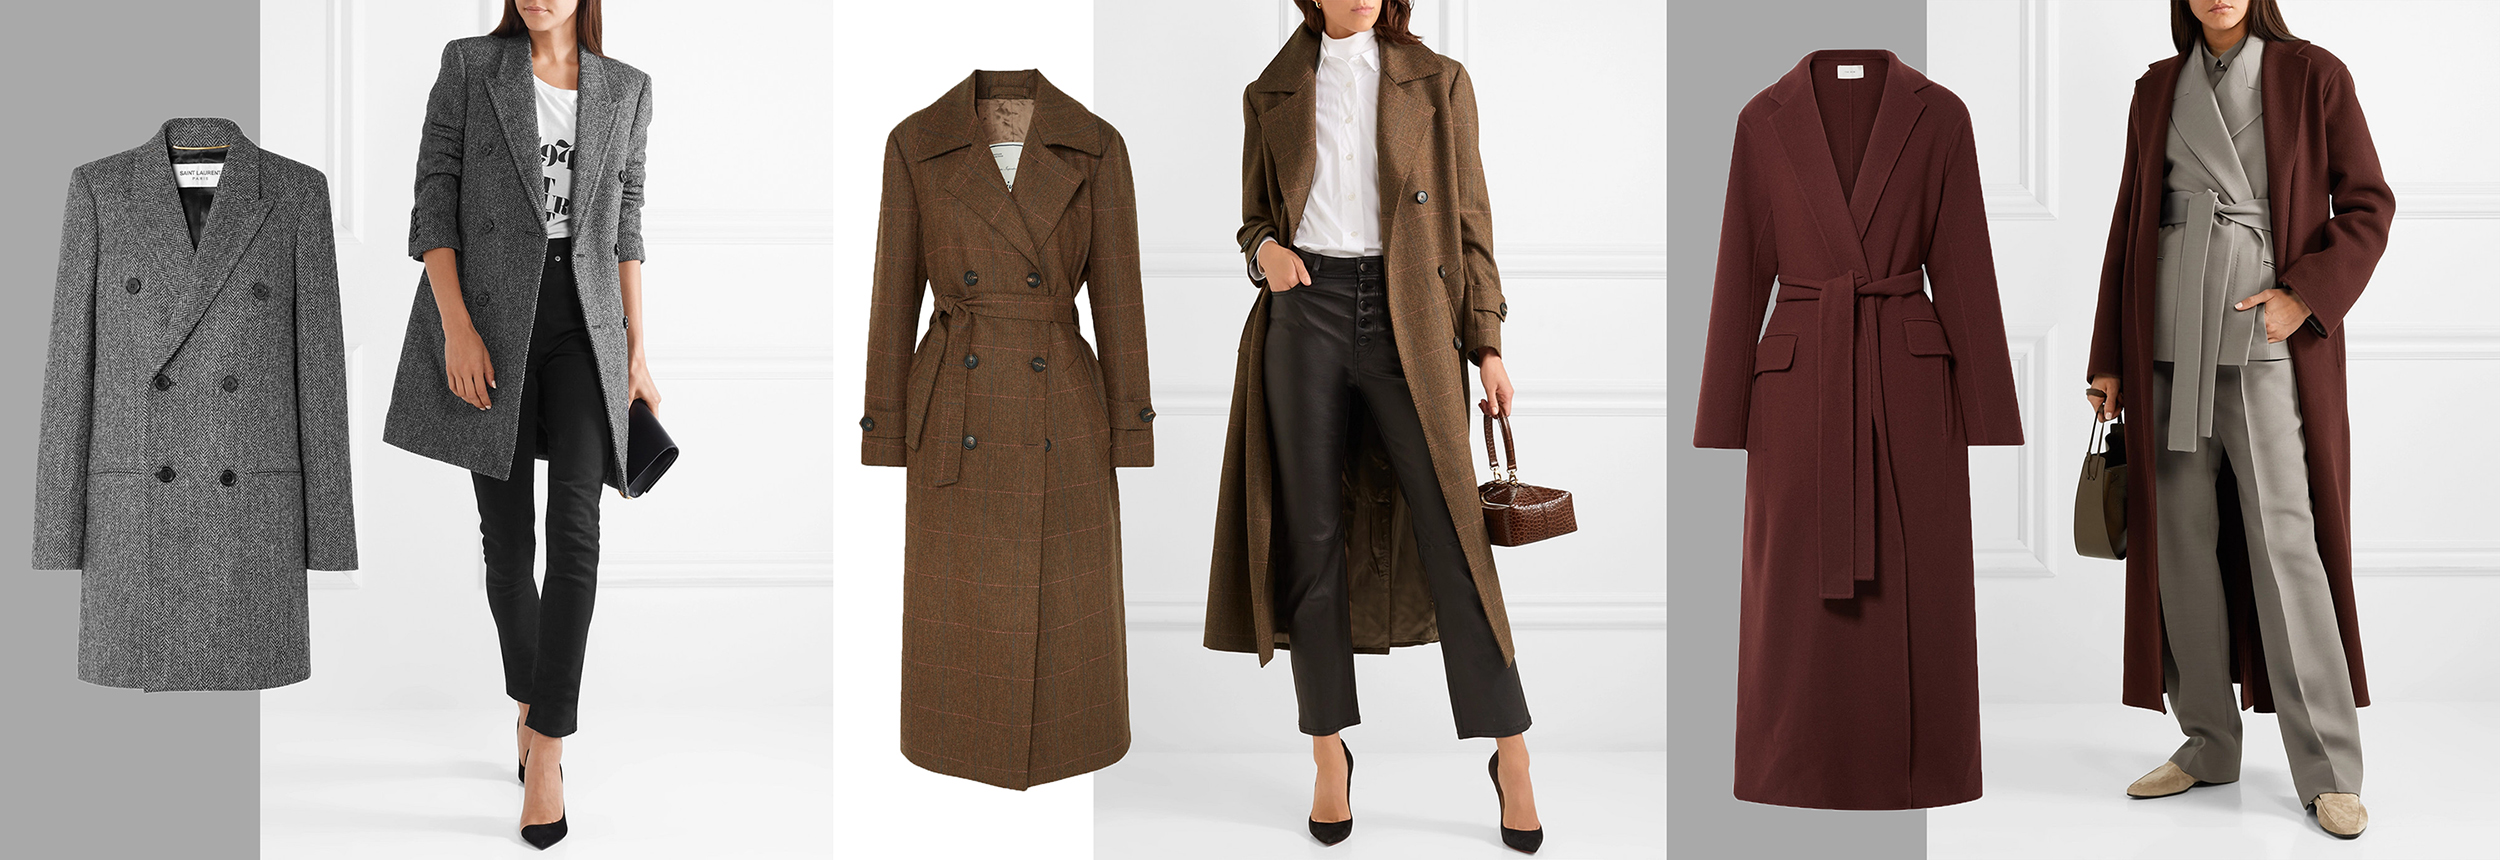 basic-wardrobe-coat-lenght.jpg